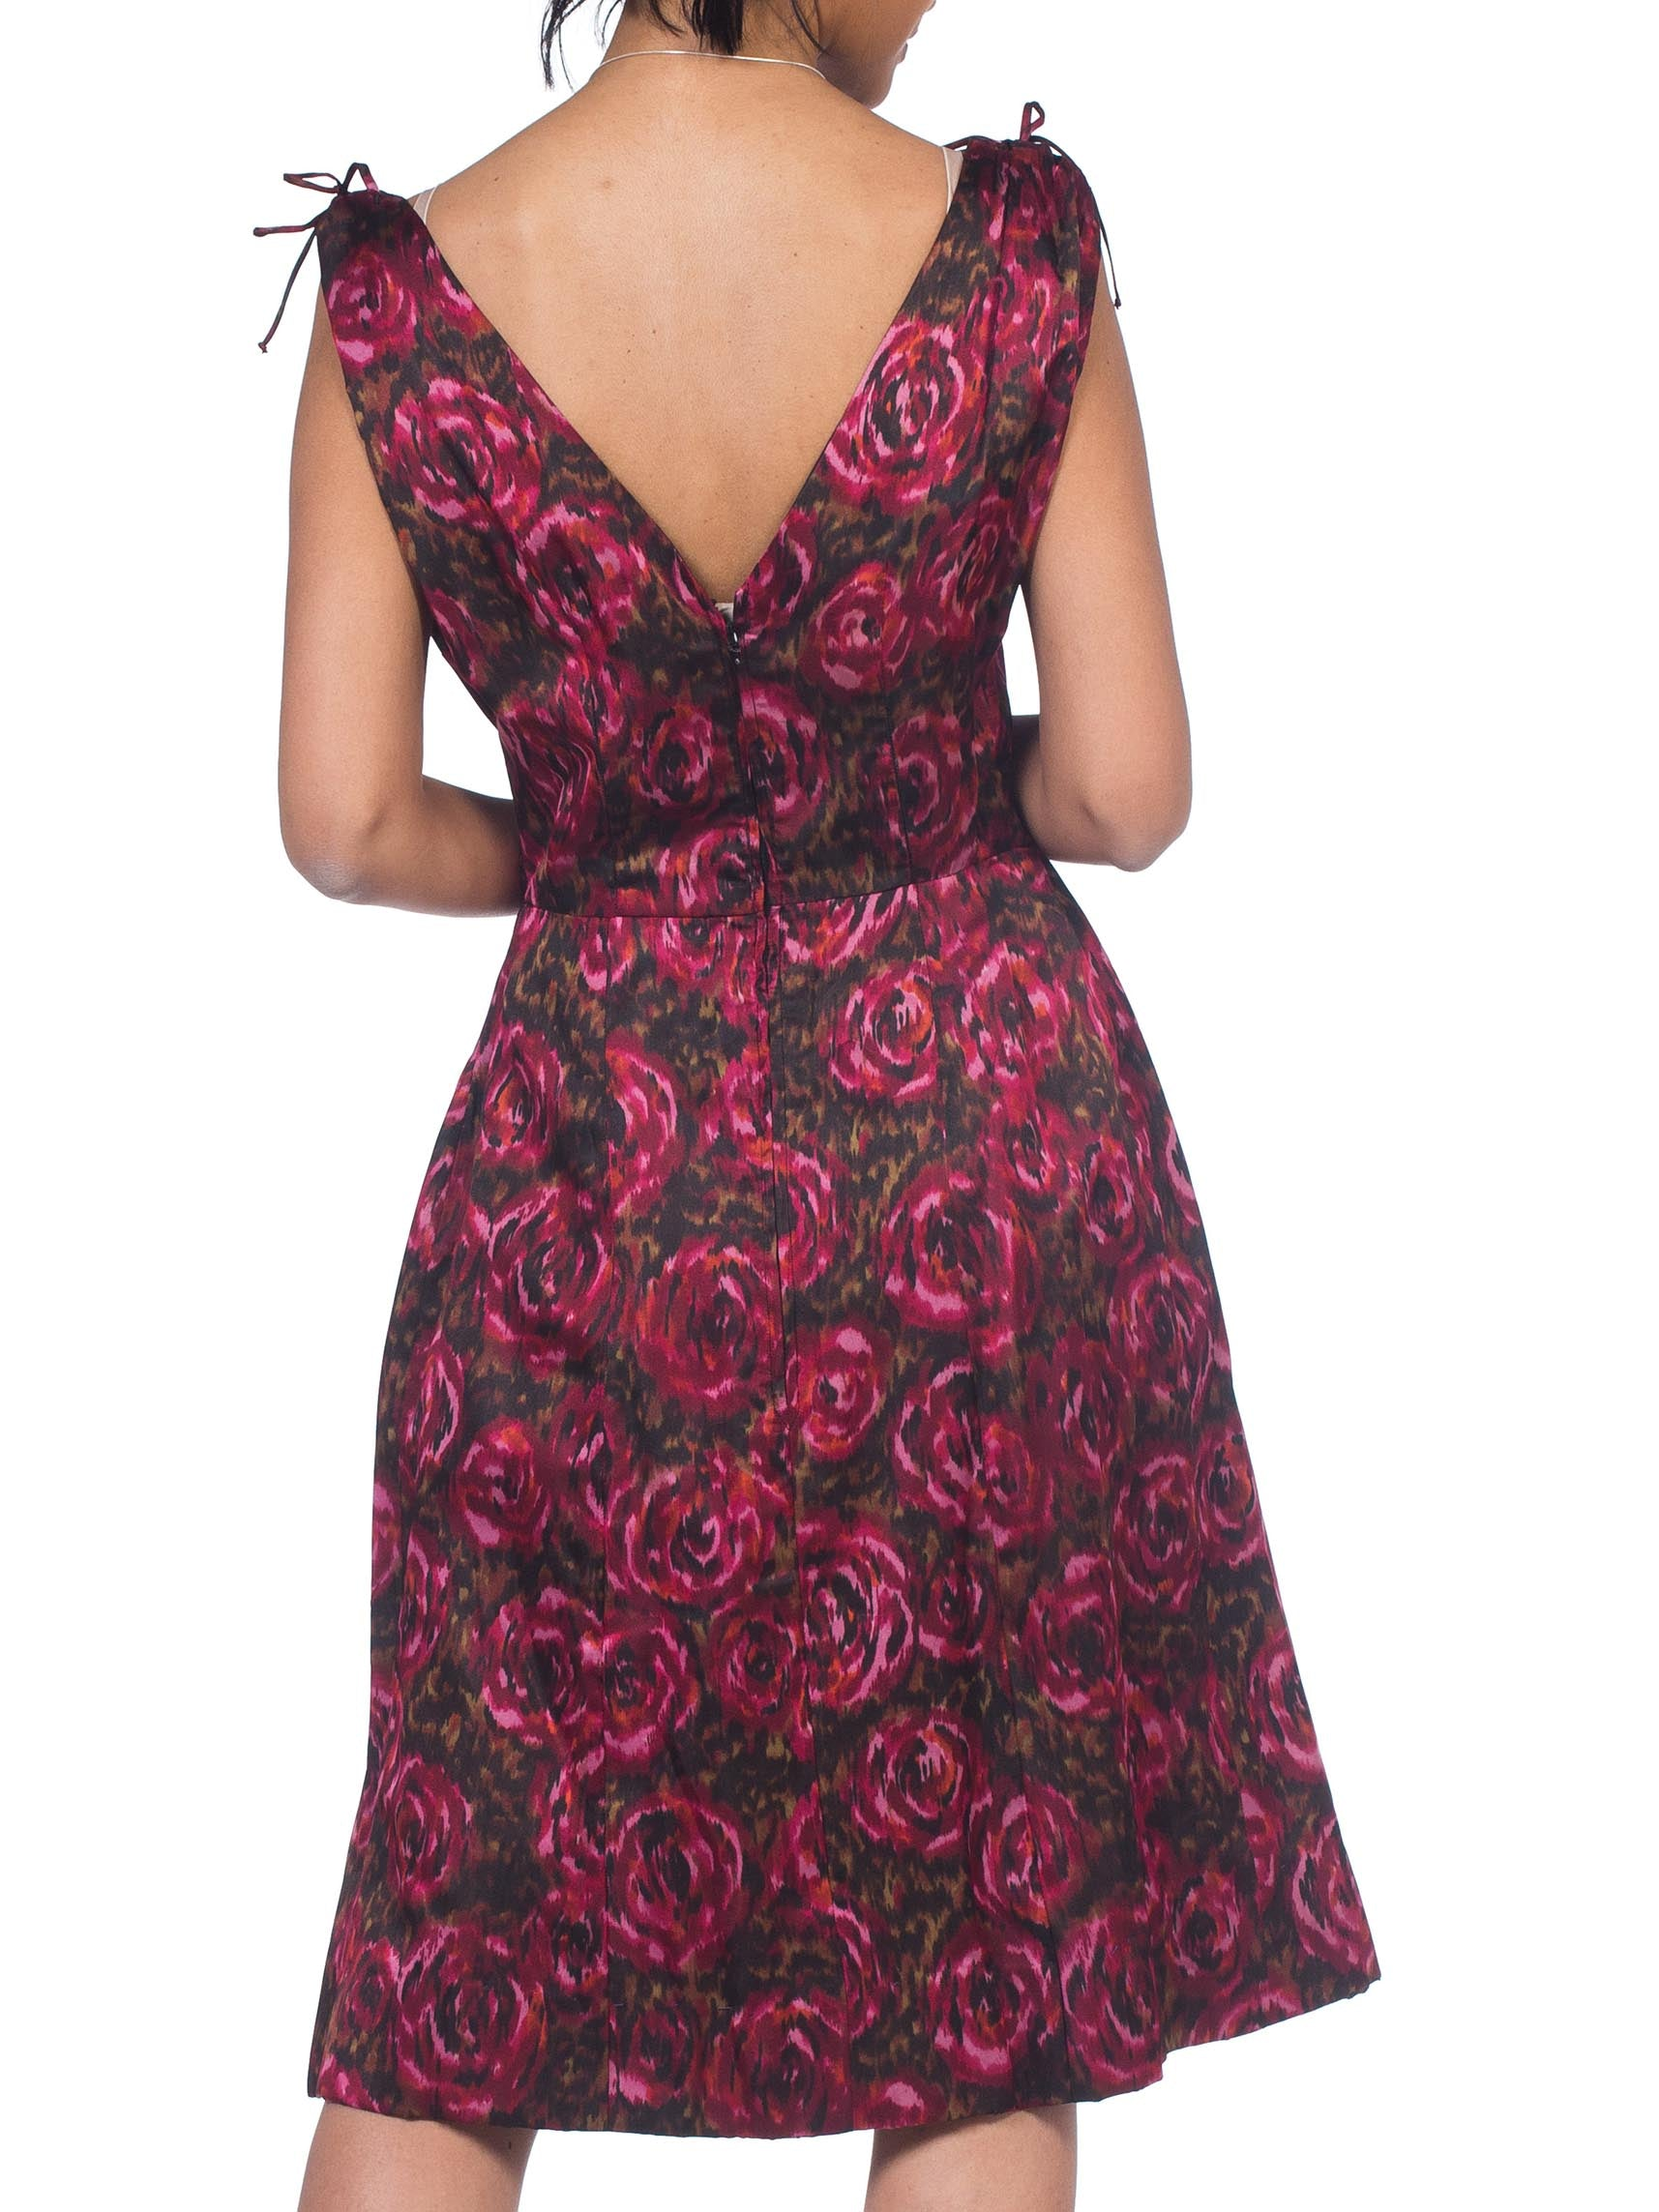 1950S Cranberry Red & Black Silk Satin Floral Ikat Cocktail Dress